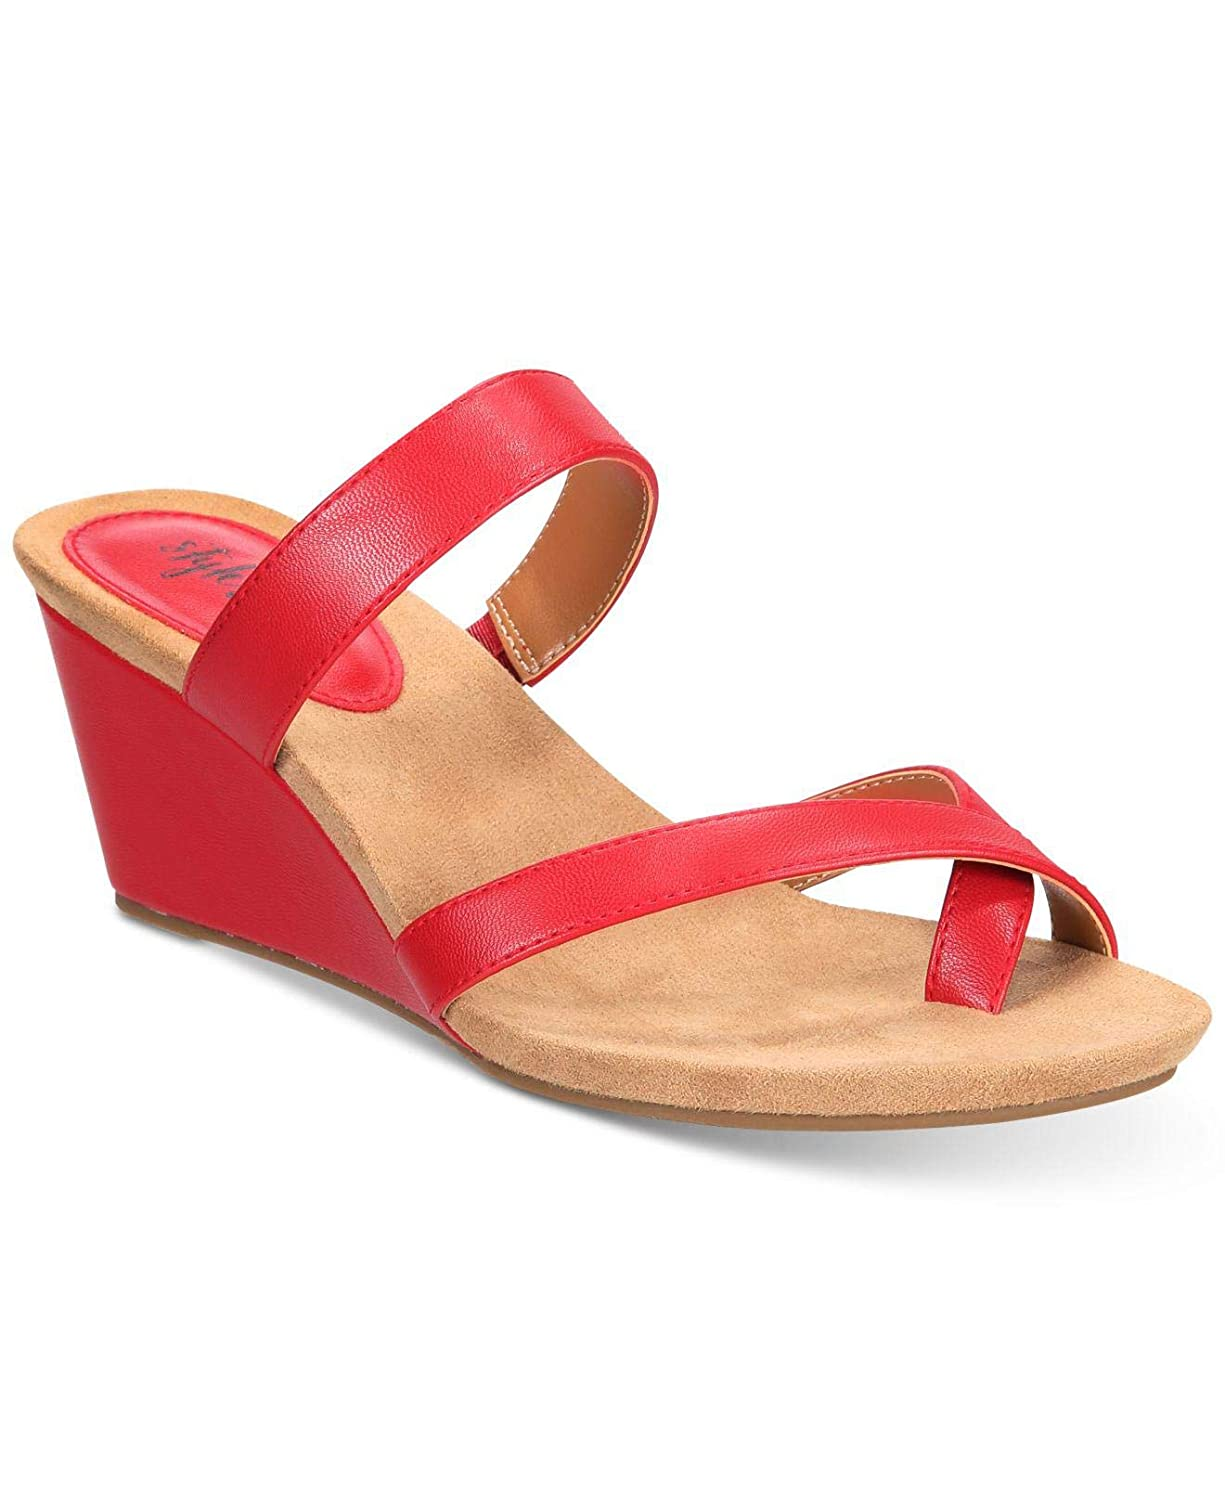 Lady Bug Style & Co. Womens Madelaa Toe Loop Faux Leather Wedge Sandals